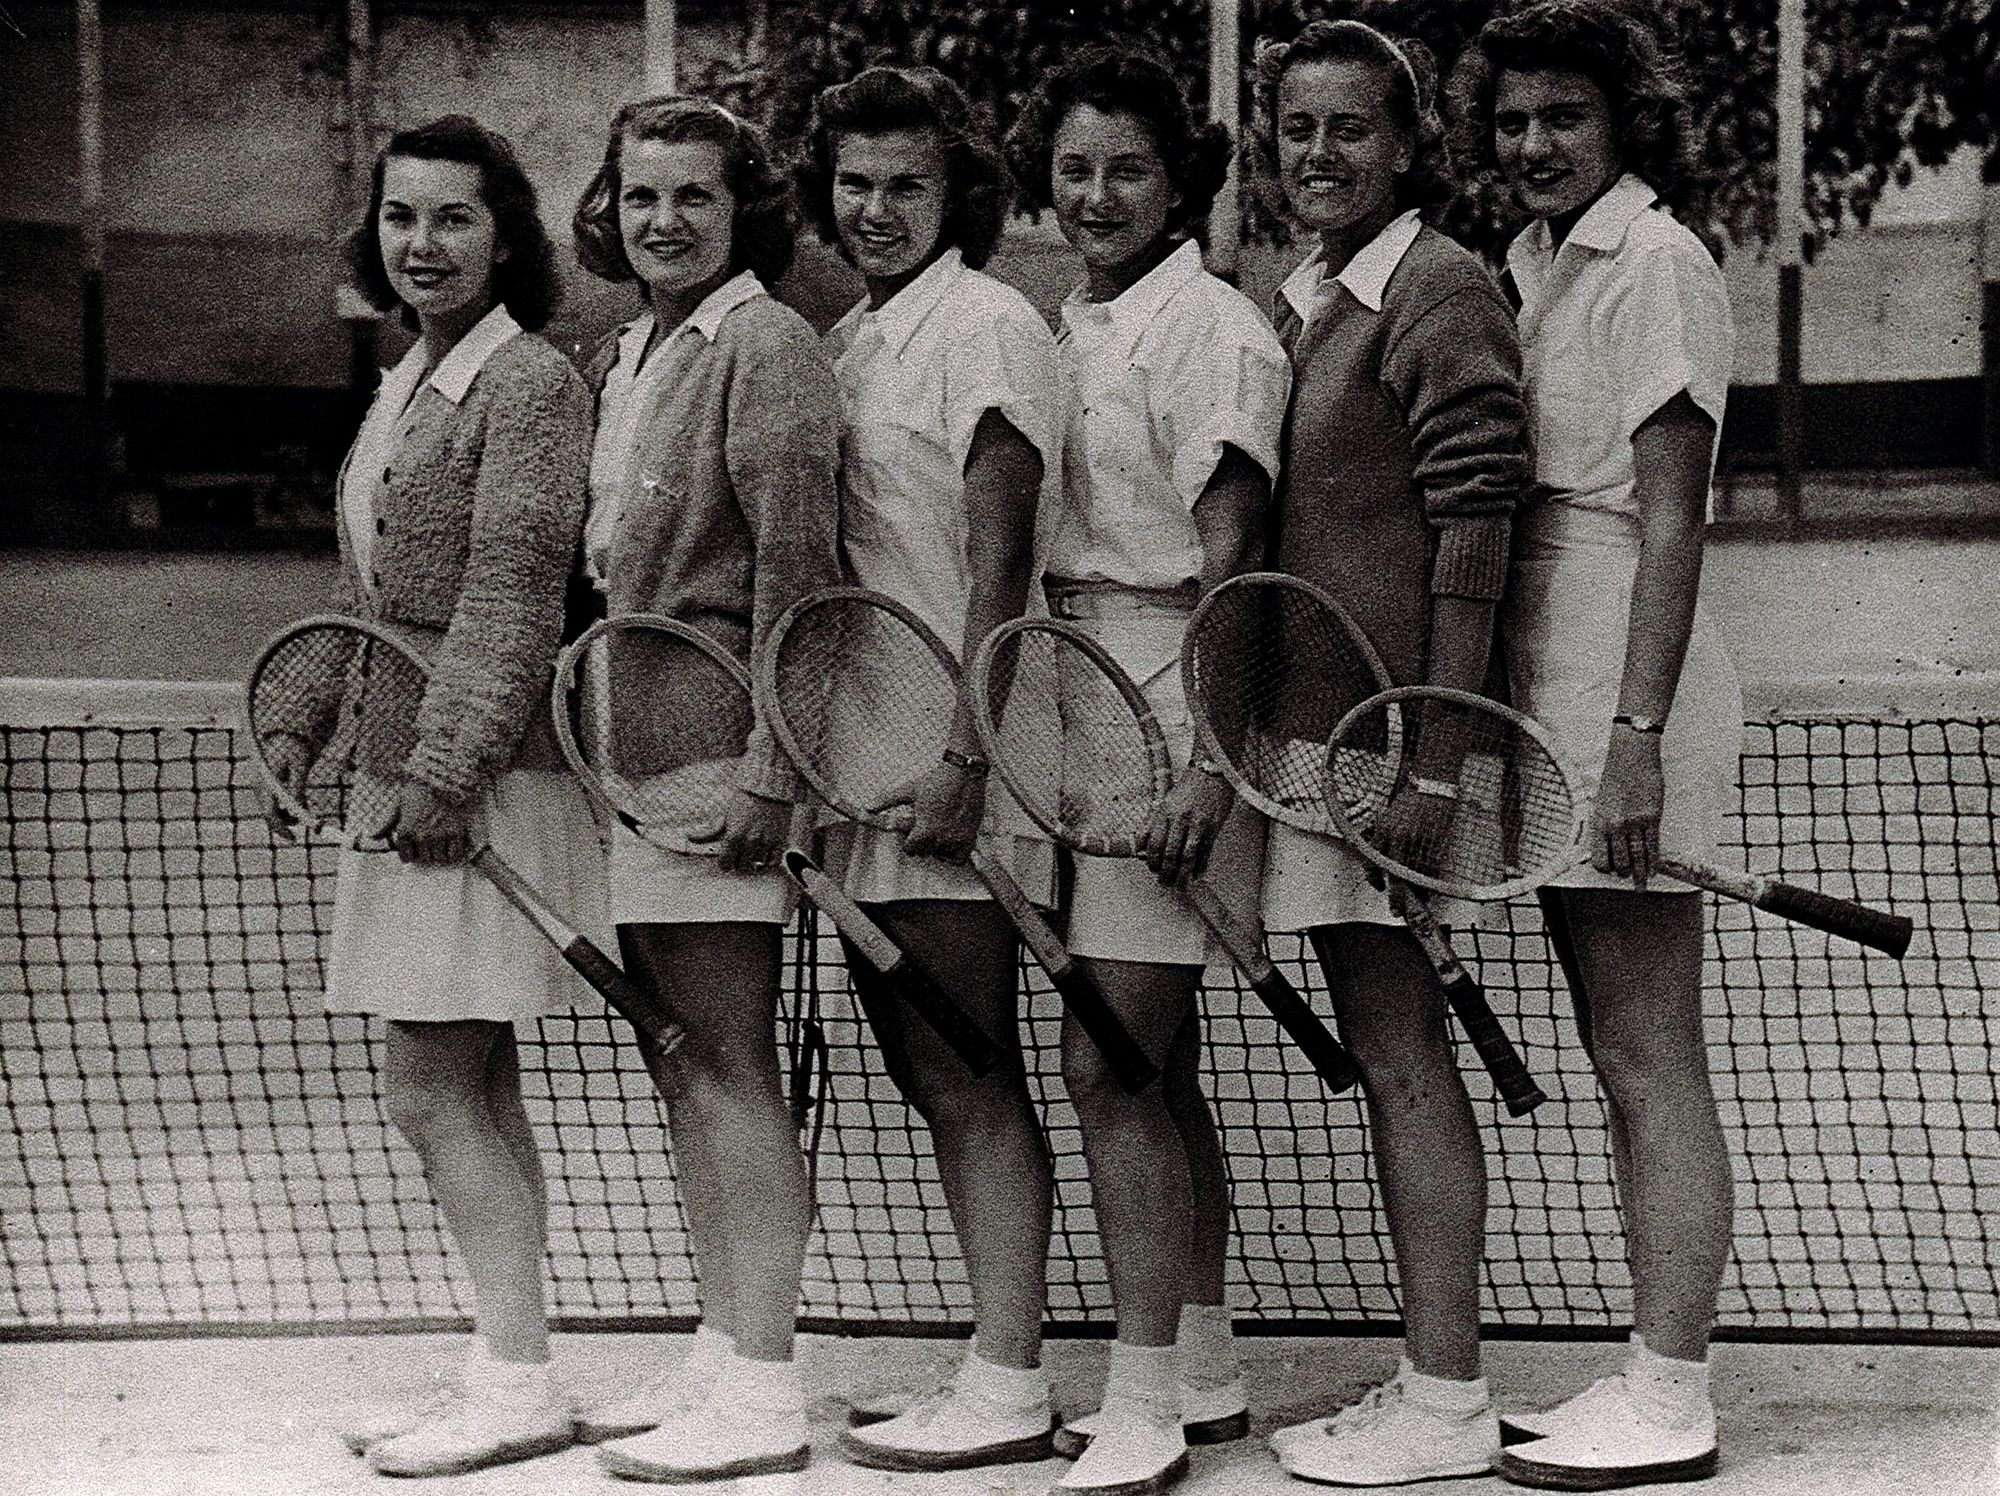 Shirley Fry Irvin '49 pictured on the tennis court at Rollins College with five of her teammates.